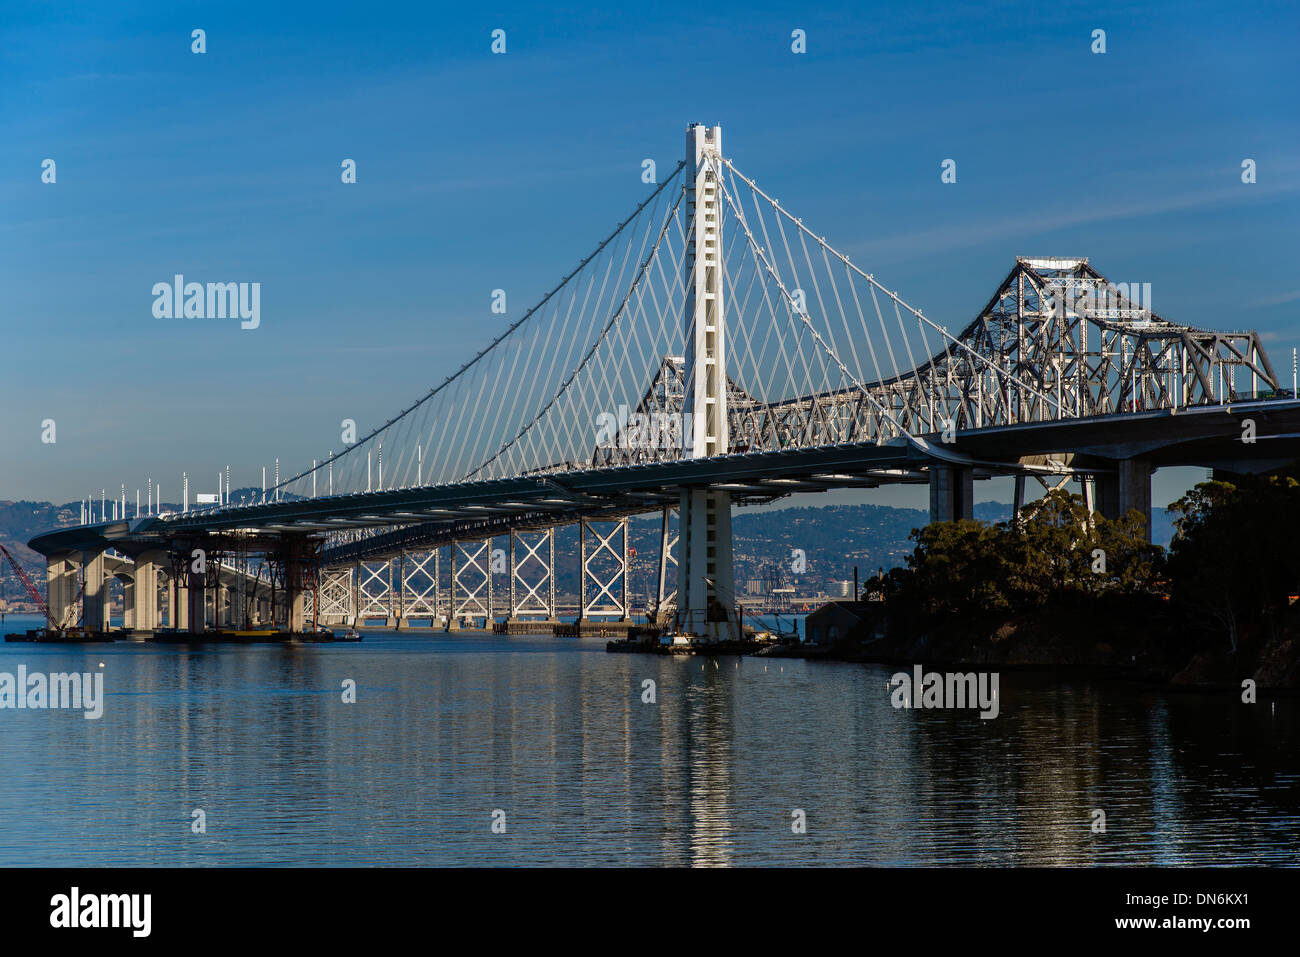 The new eastern span of Bay Bridge seen from Treasure Island, San Francisco, California, USA - Stock Image